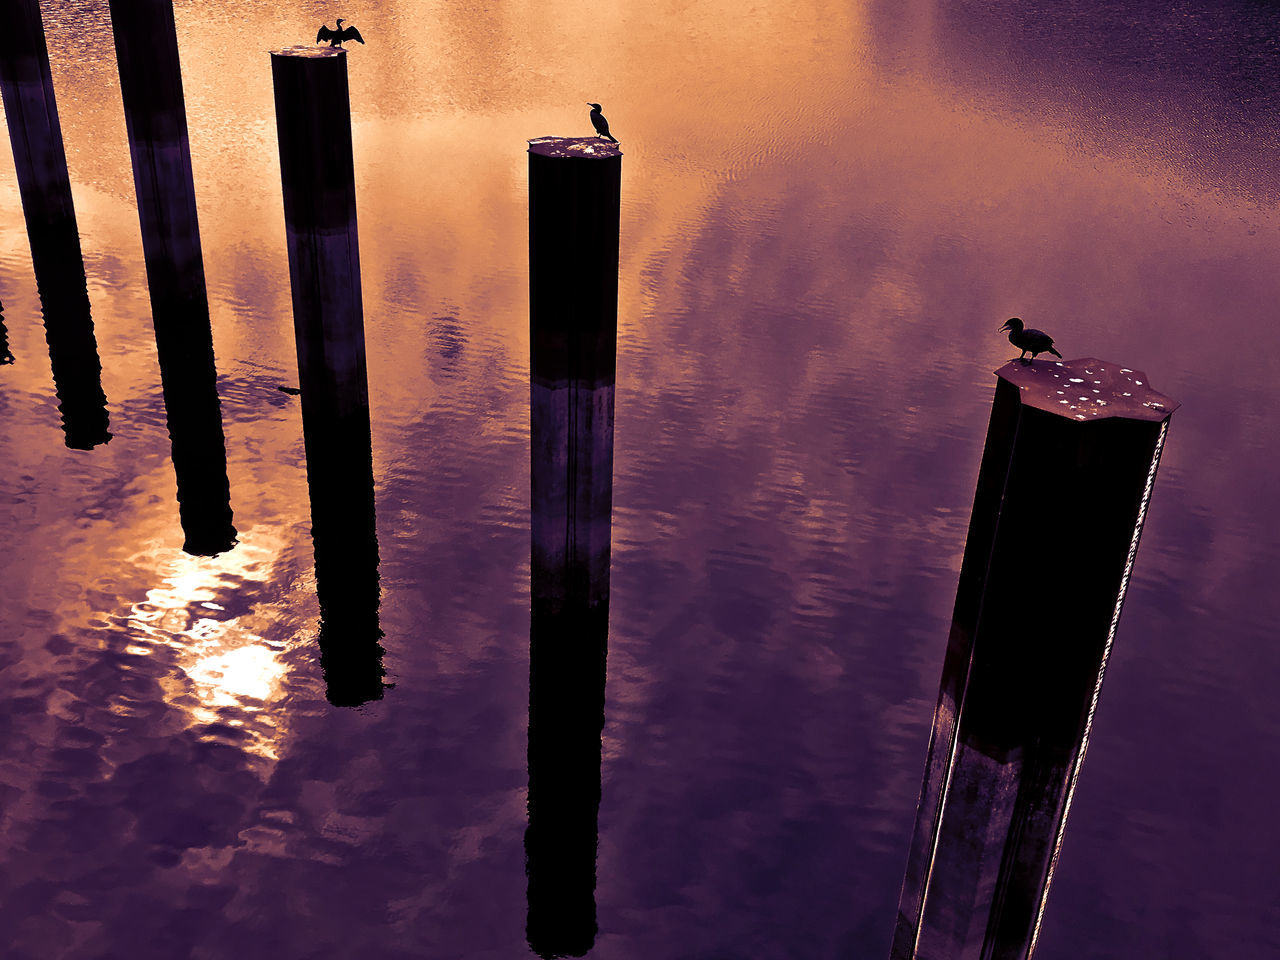 water, no people, outdoors, spirituality, sunset, wooden post, sky, day, nature, close-up